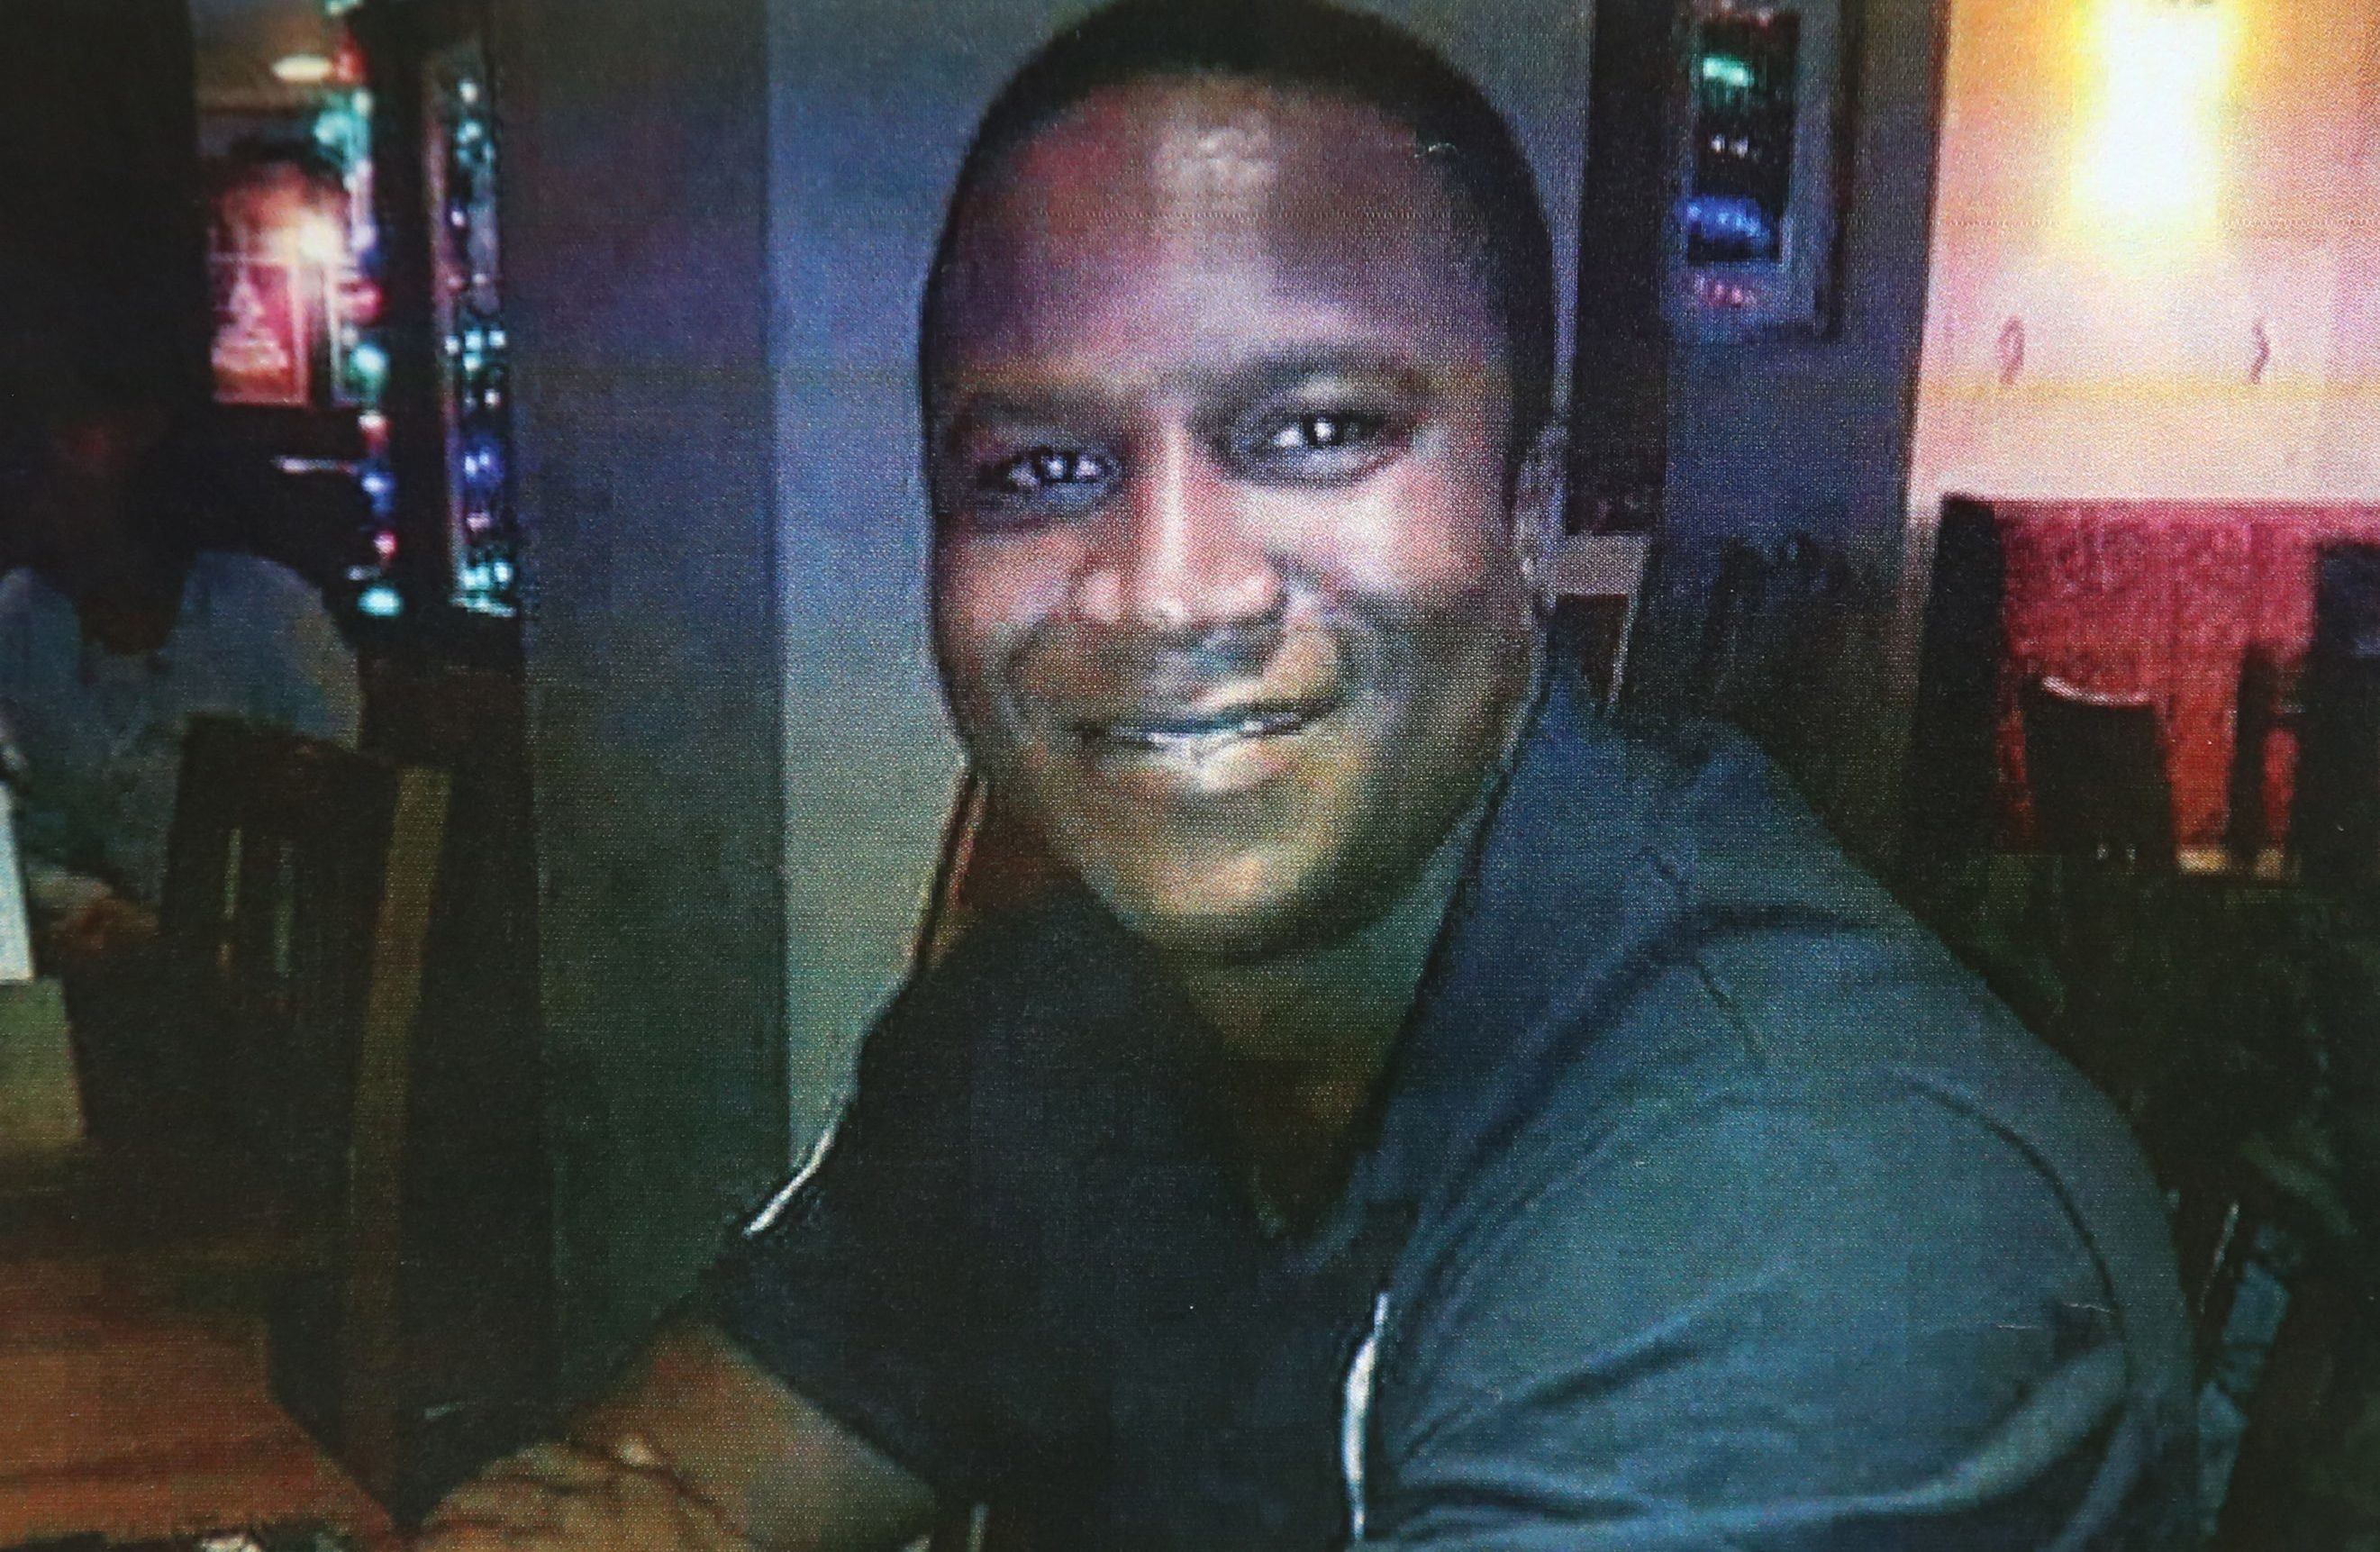 Sheku Bayoh, died while in police custody in Kirkcaldy in May 2015 after he was restrained by nine officers.